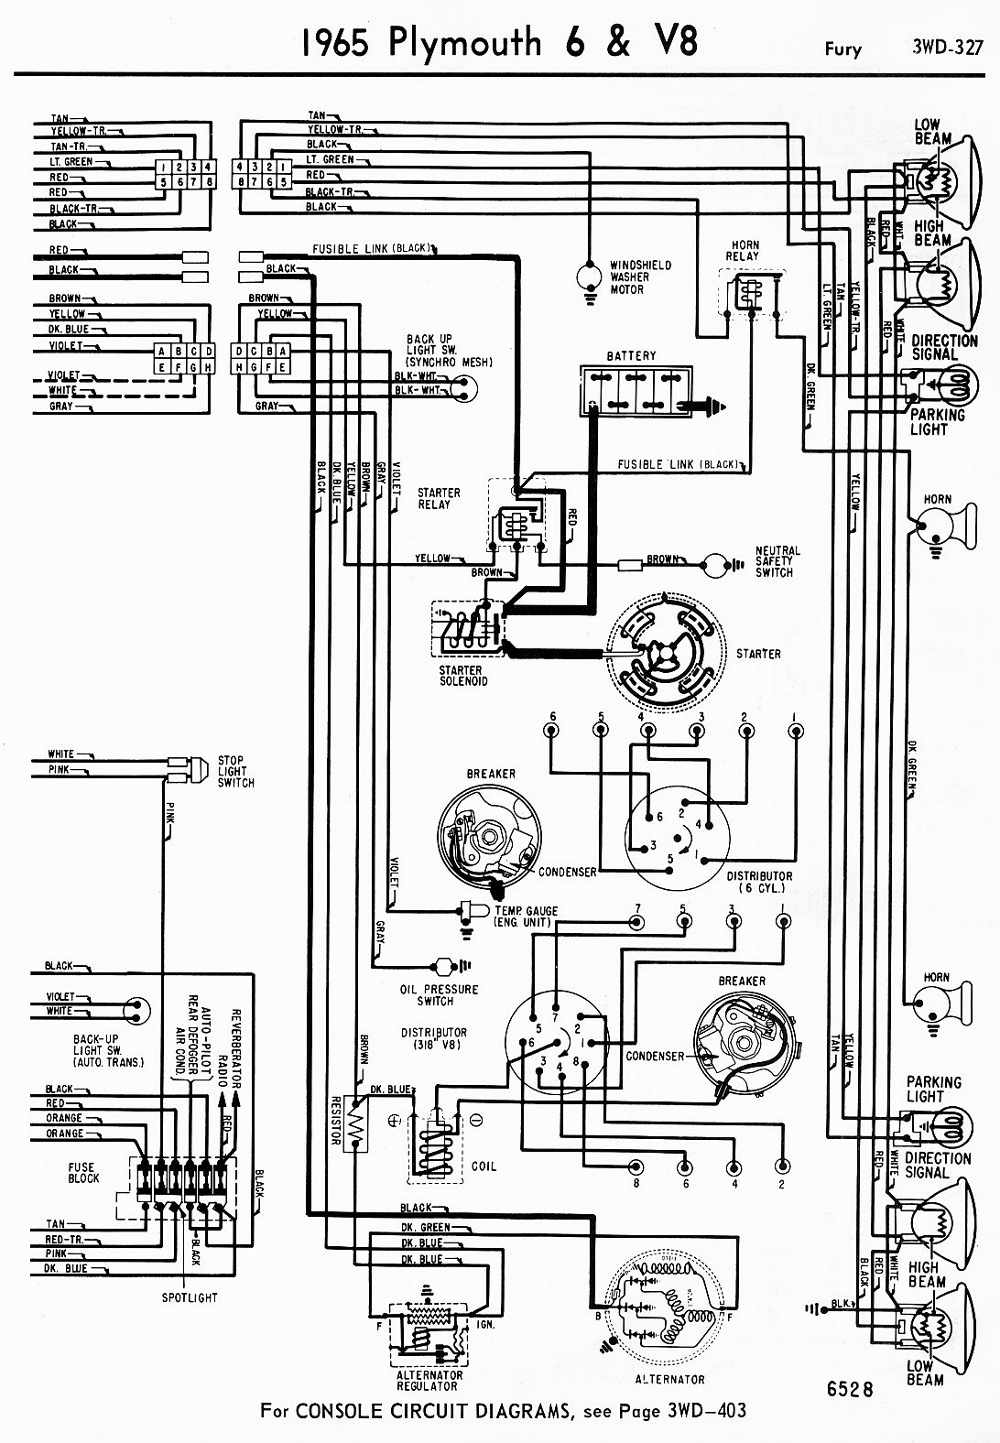 wiring diagrams of 1965 plymouth 6 and v8 belvedere part 1